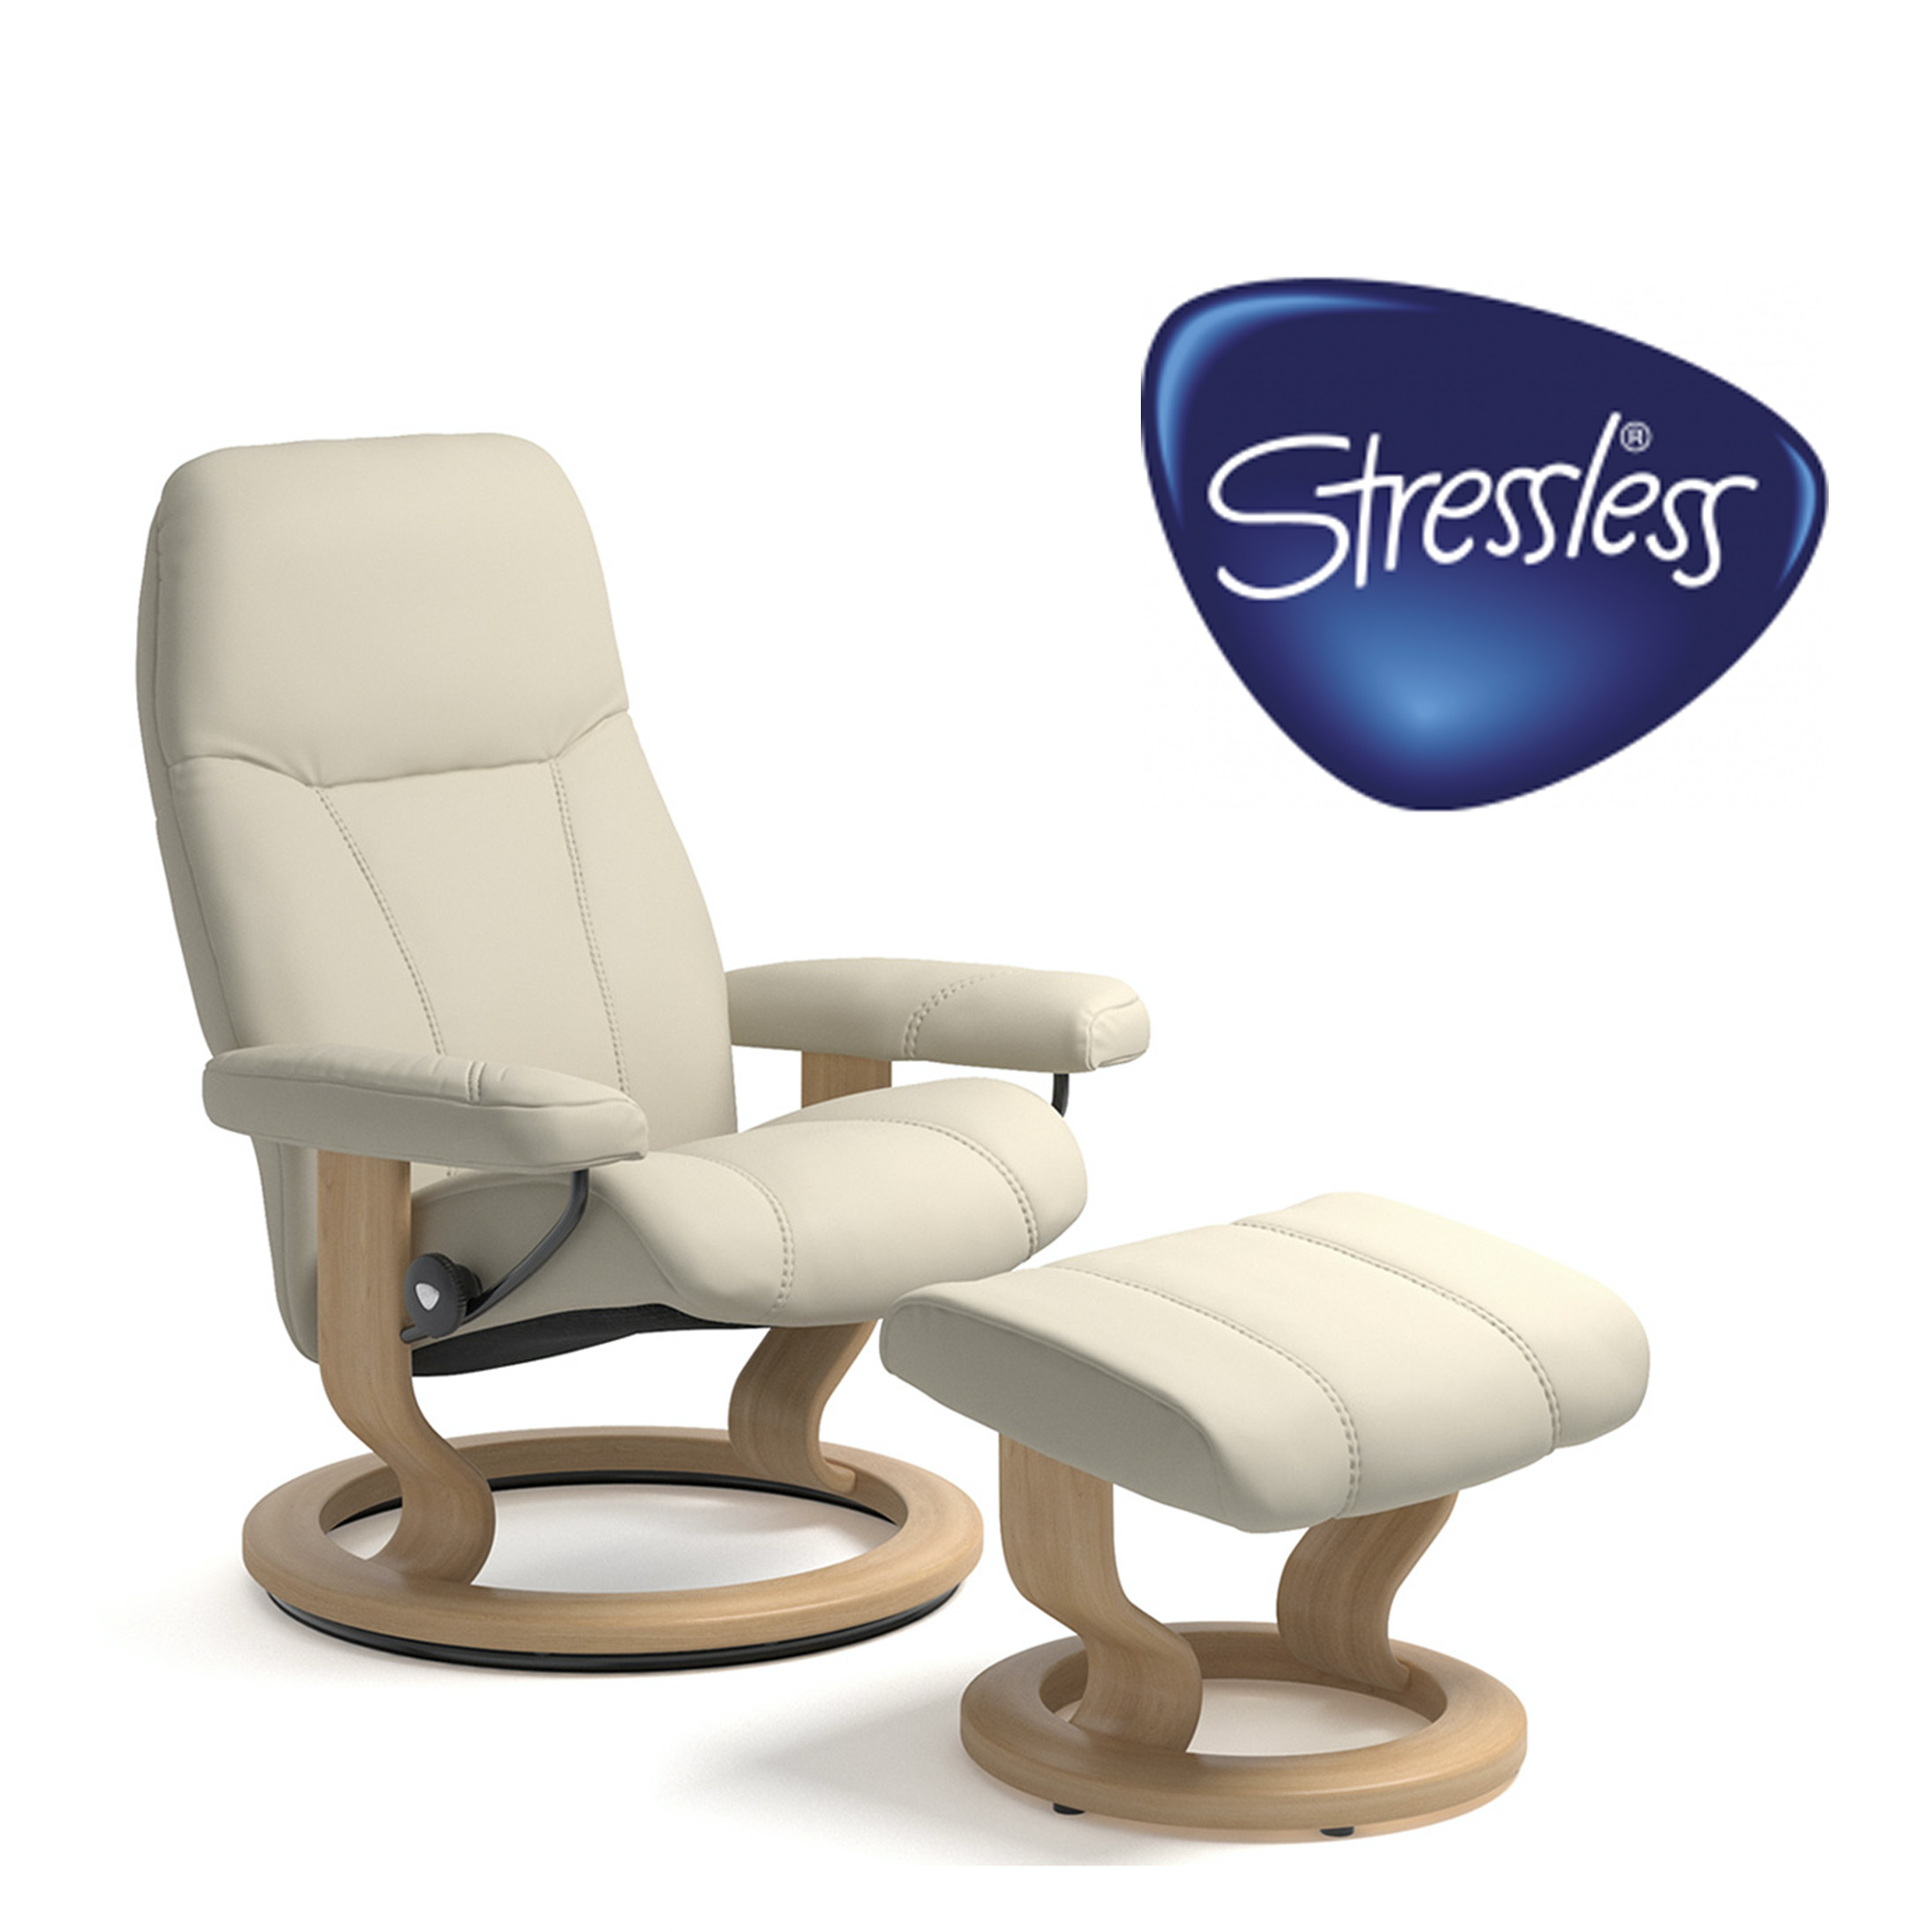 Stressless Consul Promo Medium - Chair & Stool In Batick Cream Leather With Oak Finish Frame